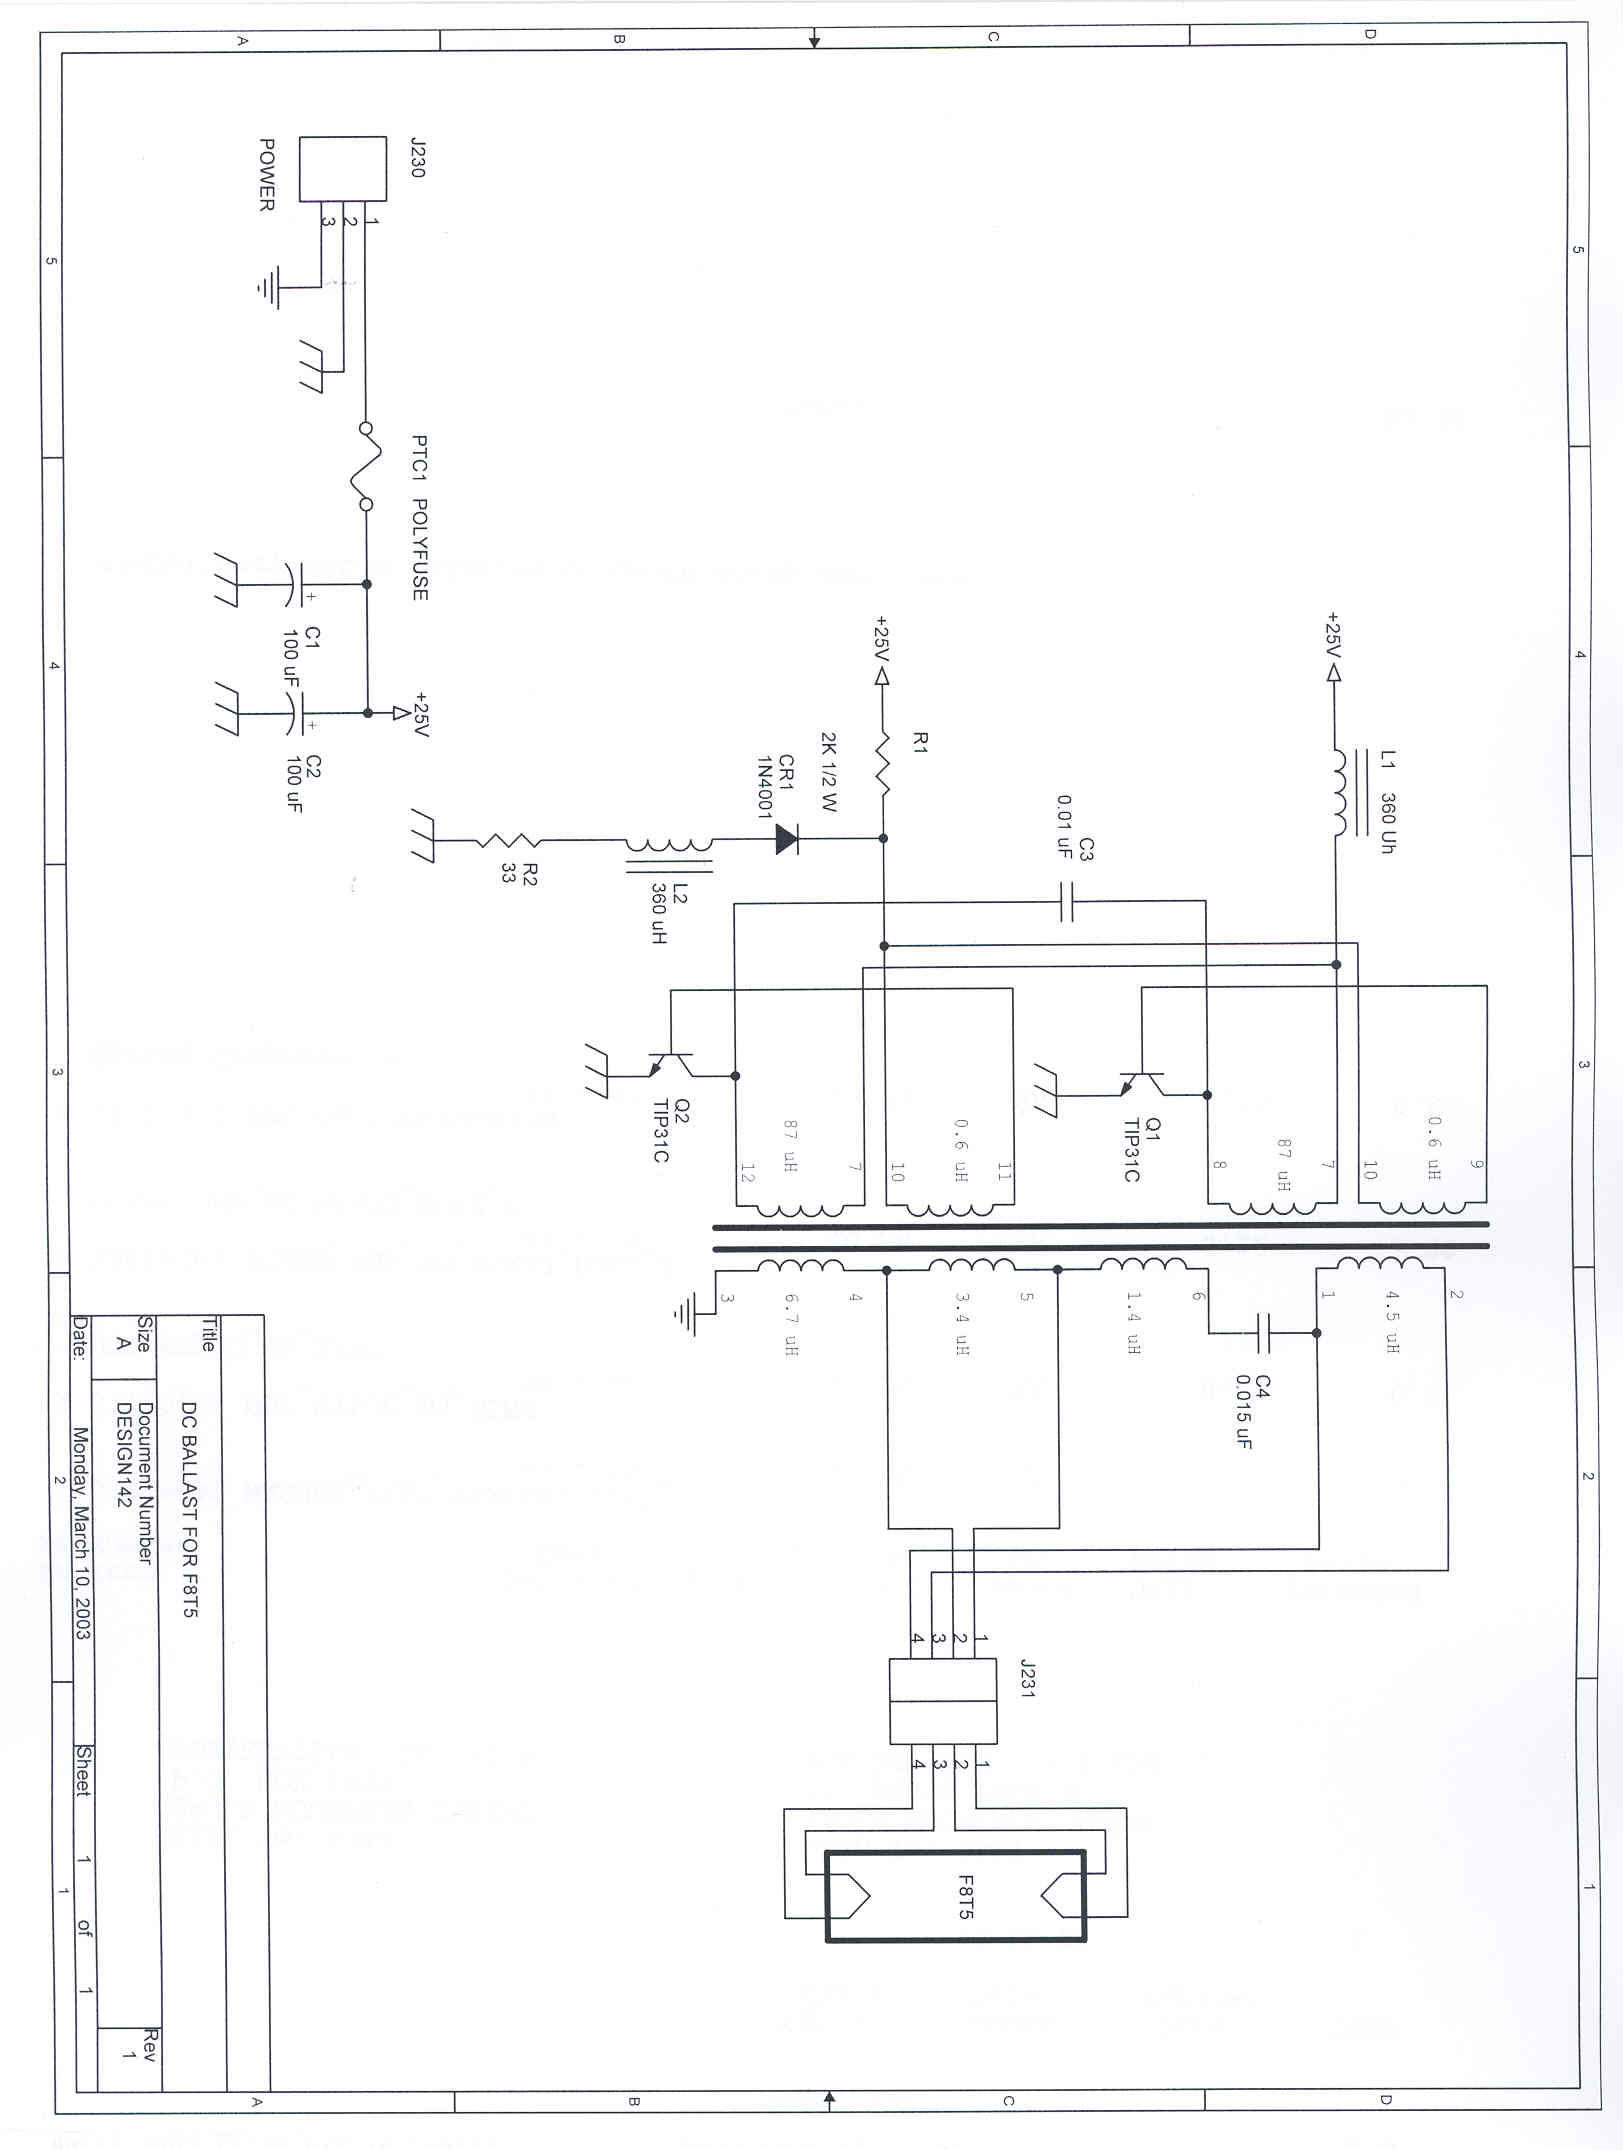 Pyle Plbt73g Wiring Diagram : 27 Wiring Diagram Images